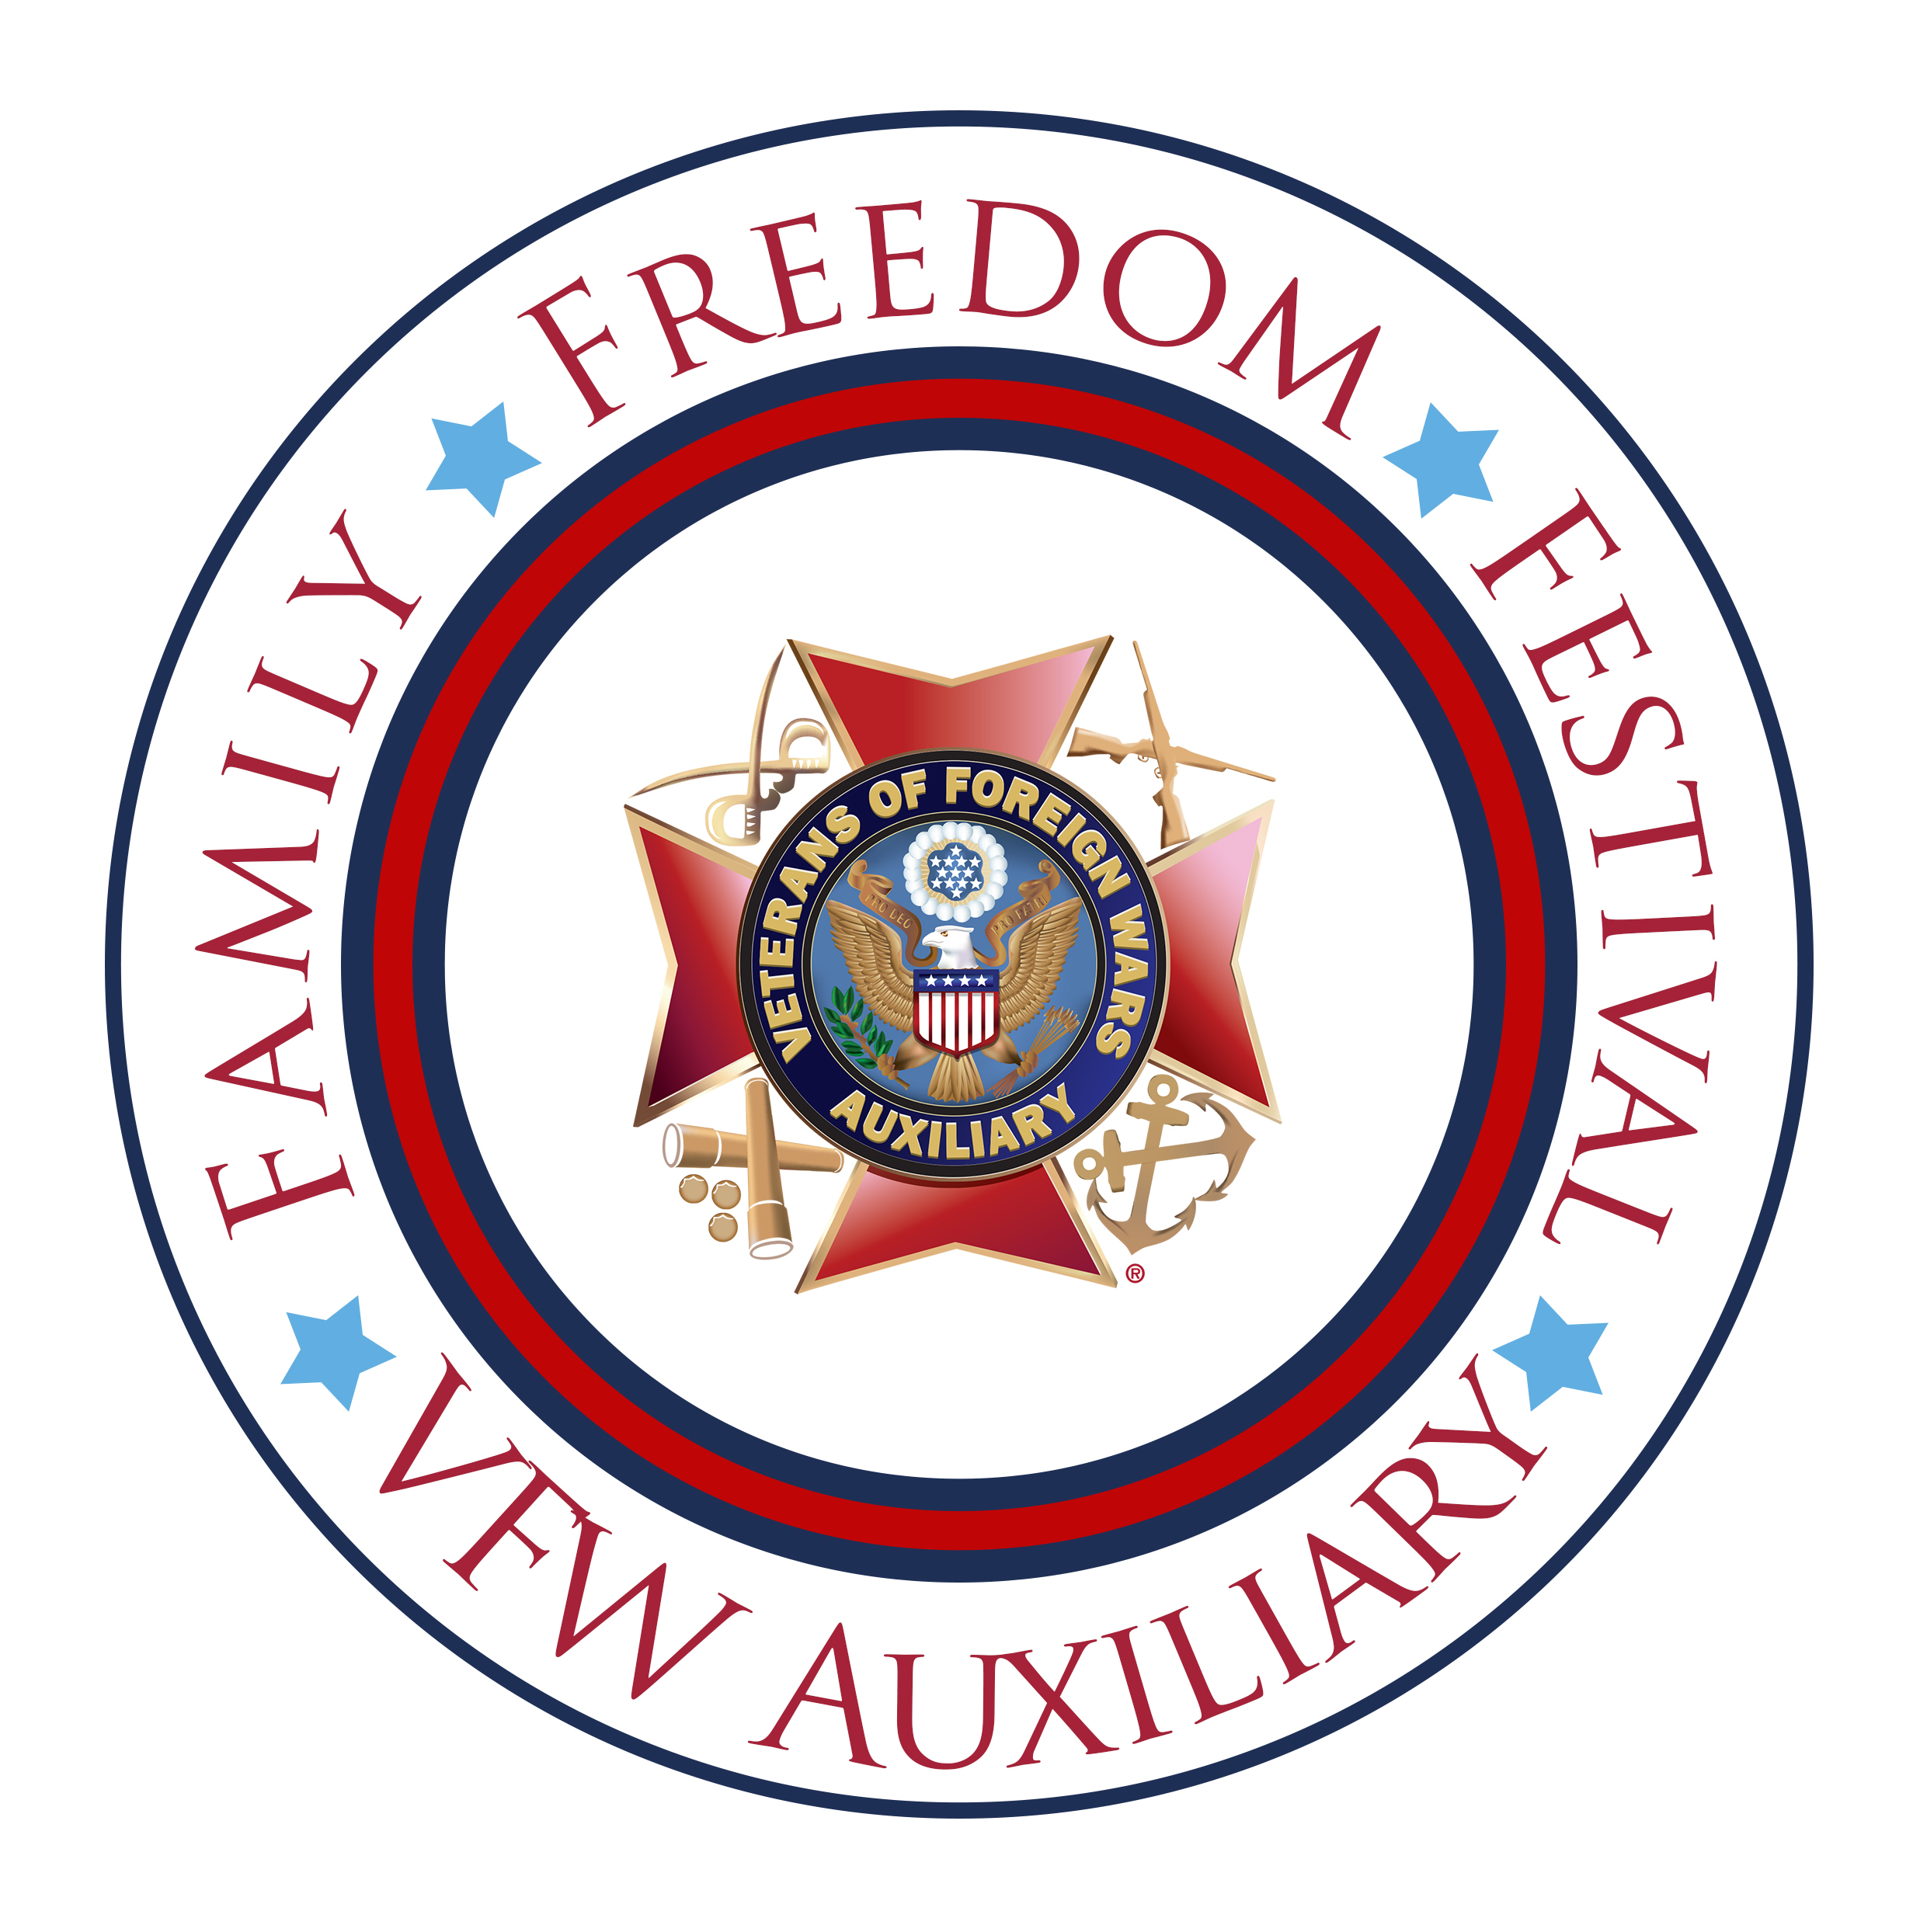 VFW Auxiliary Program & Publicity Resources